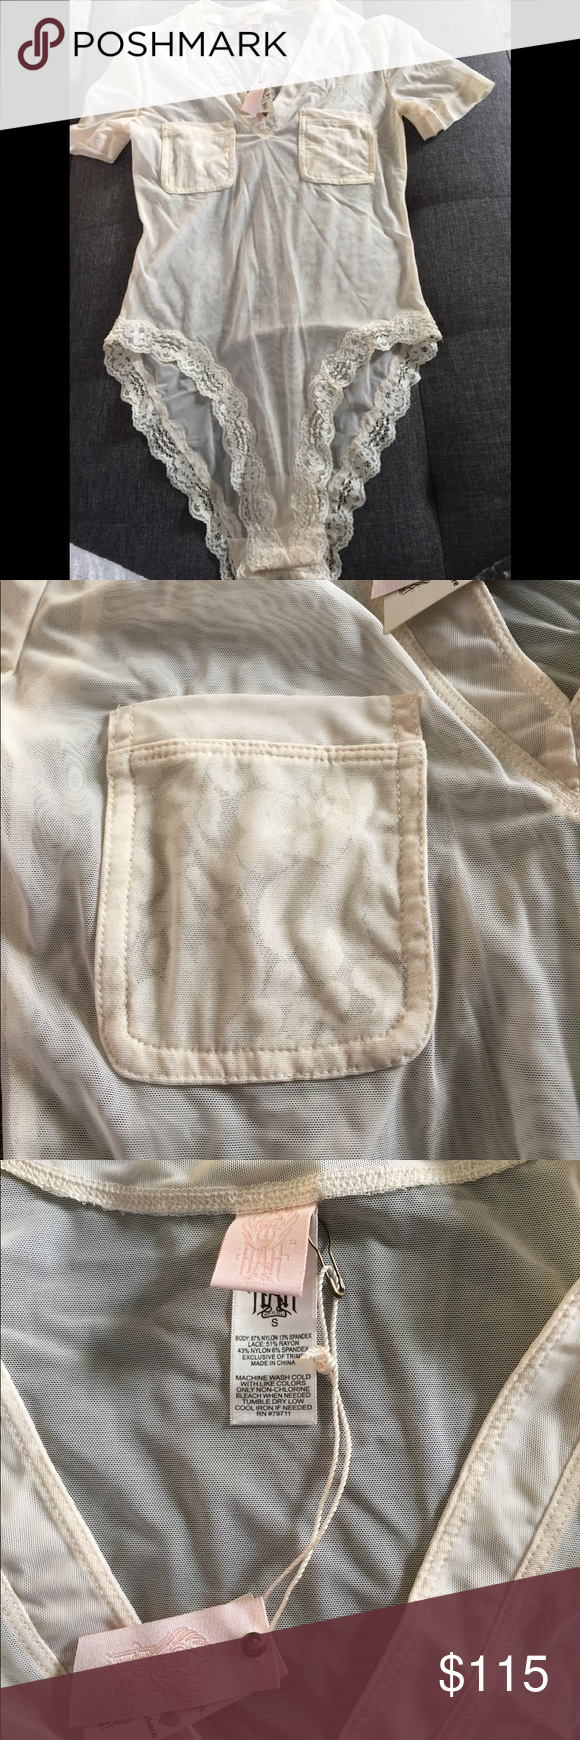 Sheer body suit Sheer. Snap crotch. Never worn. Pockets are patterned so they ar... -  Sheer body suit Sheer. Snap crotch. Never worn. Pockets are patterned so they ar… –  Sheer body - #Body #BodySuitTattoos #crotch #FacePaintings #Patterned #Pockets #Sheer #Snap #Suit #WORN